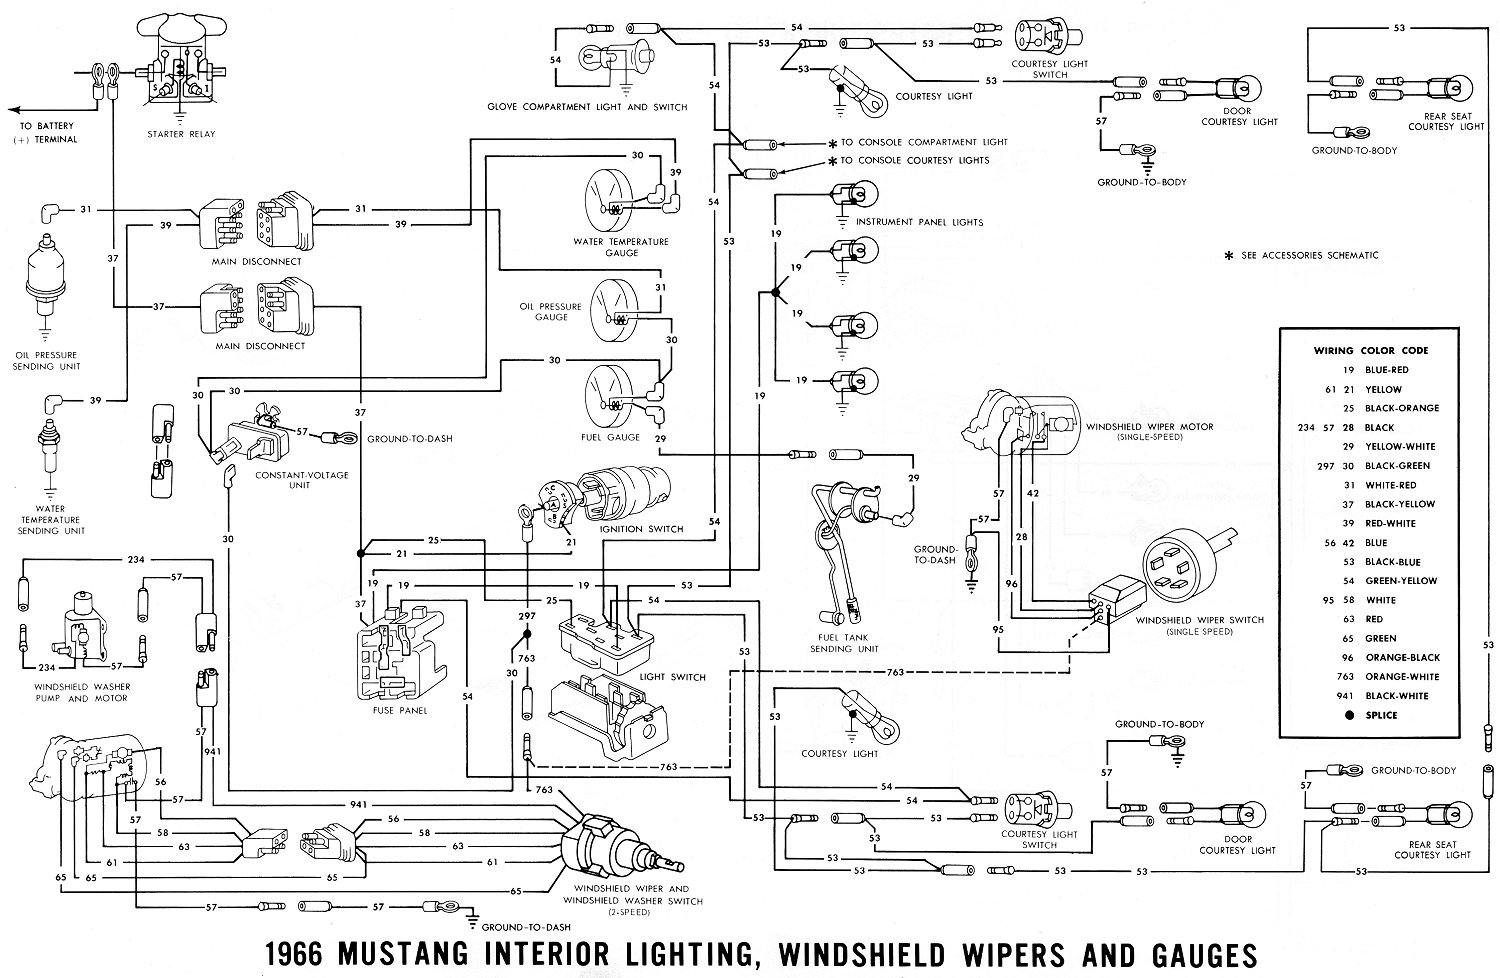 66inter1 1966 mustang wiring diagram 1966 mustang radio diagram \u2022 free 1965 mustang wiring diagram free at honlapkeszites.co